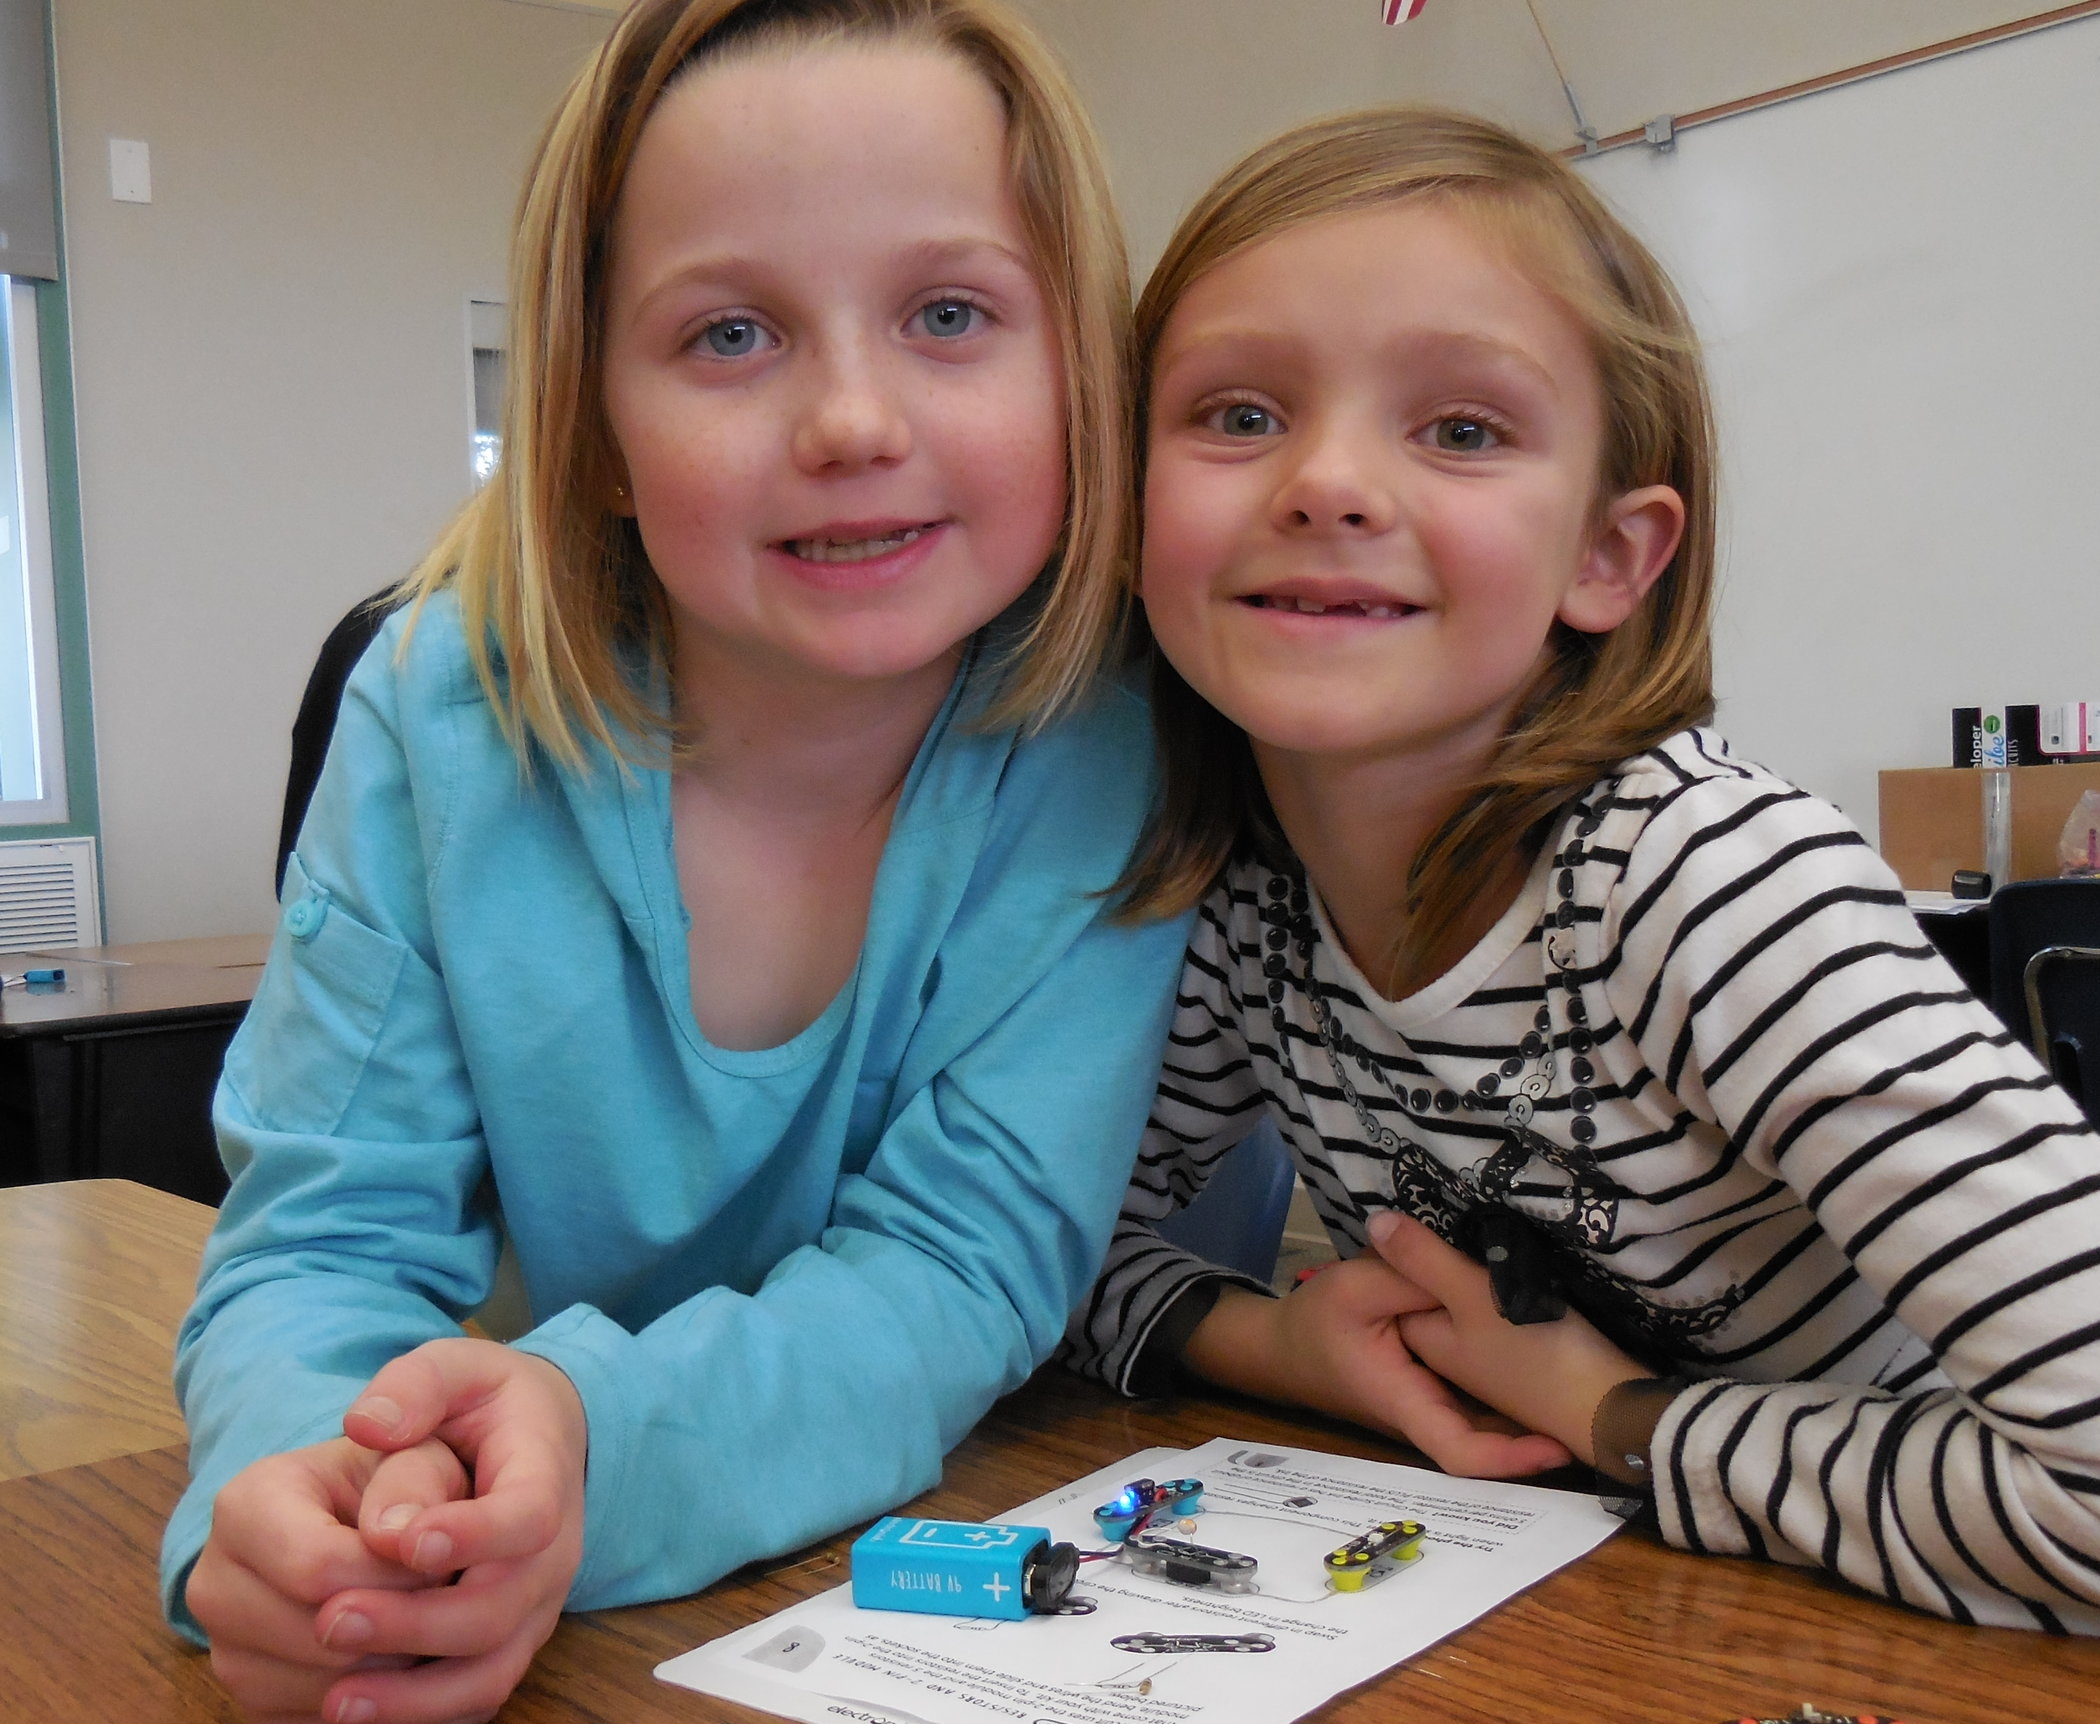 Students exploring in hands-on activities with circuits